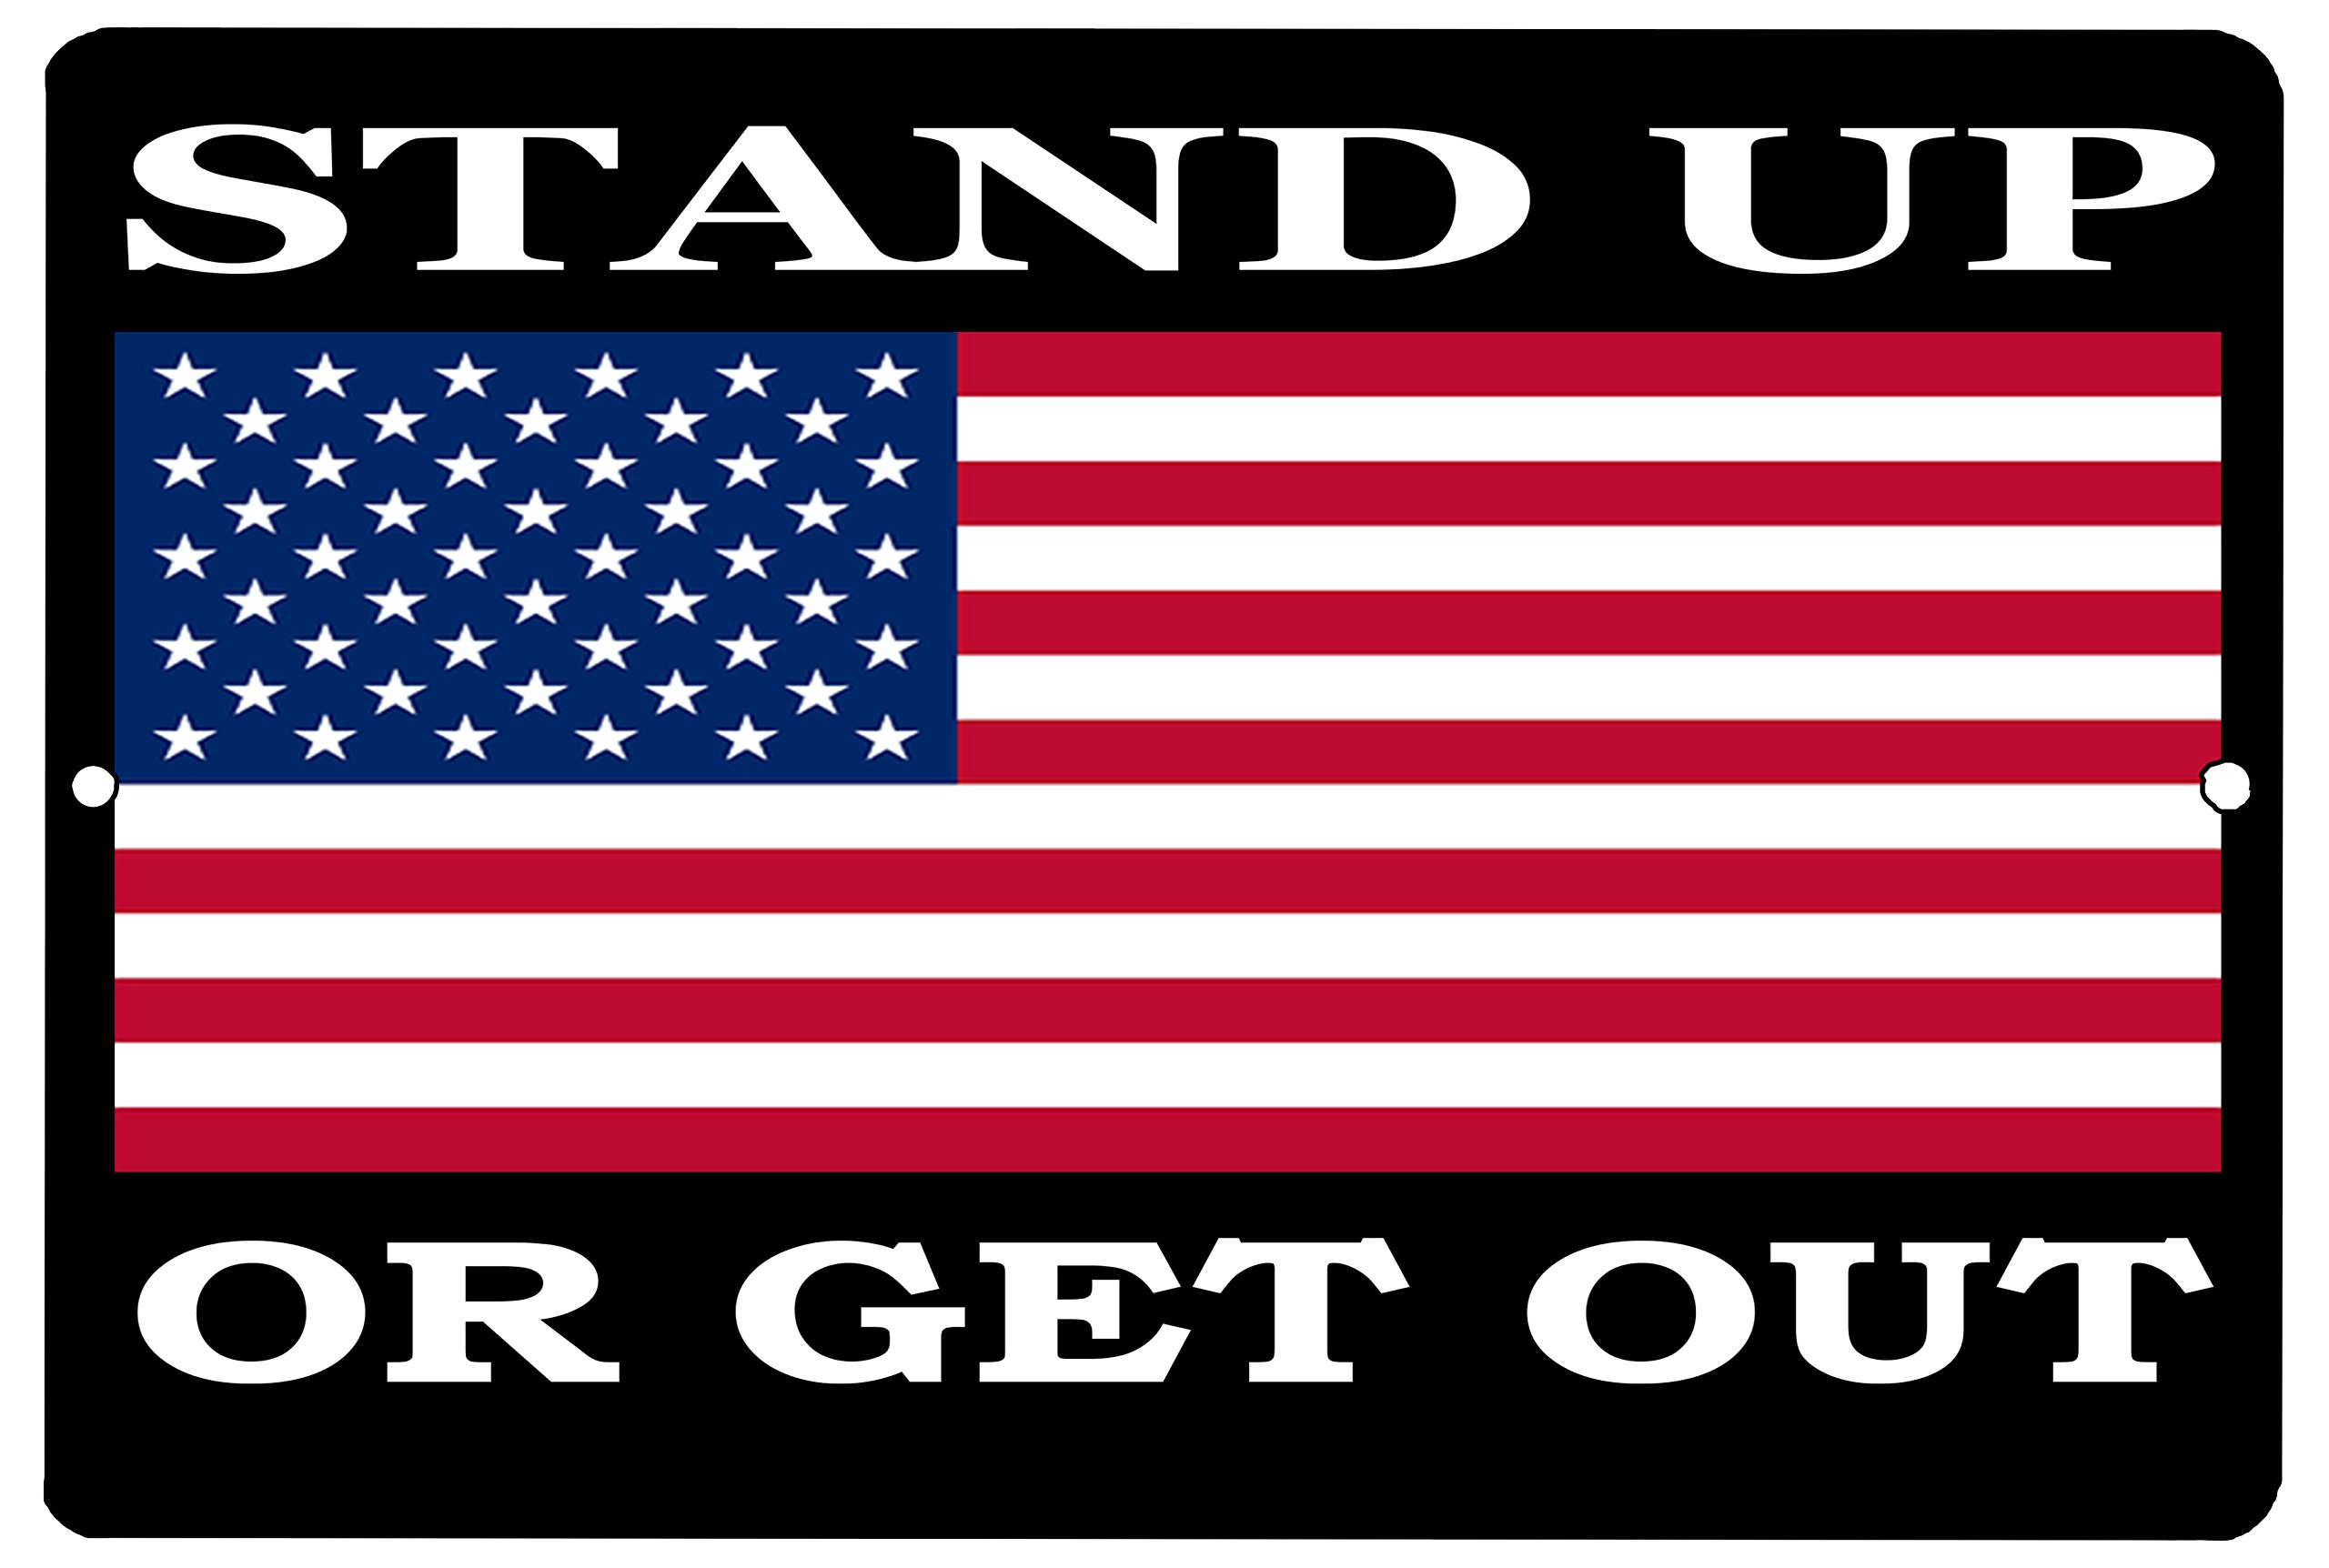 Rogue River Tactical USA American Flag Metal Tin Sign Wall Decor Man Cave Bar Stand Up Or Get Out Patriotic